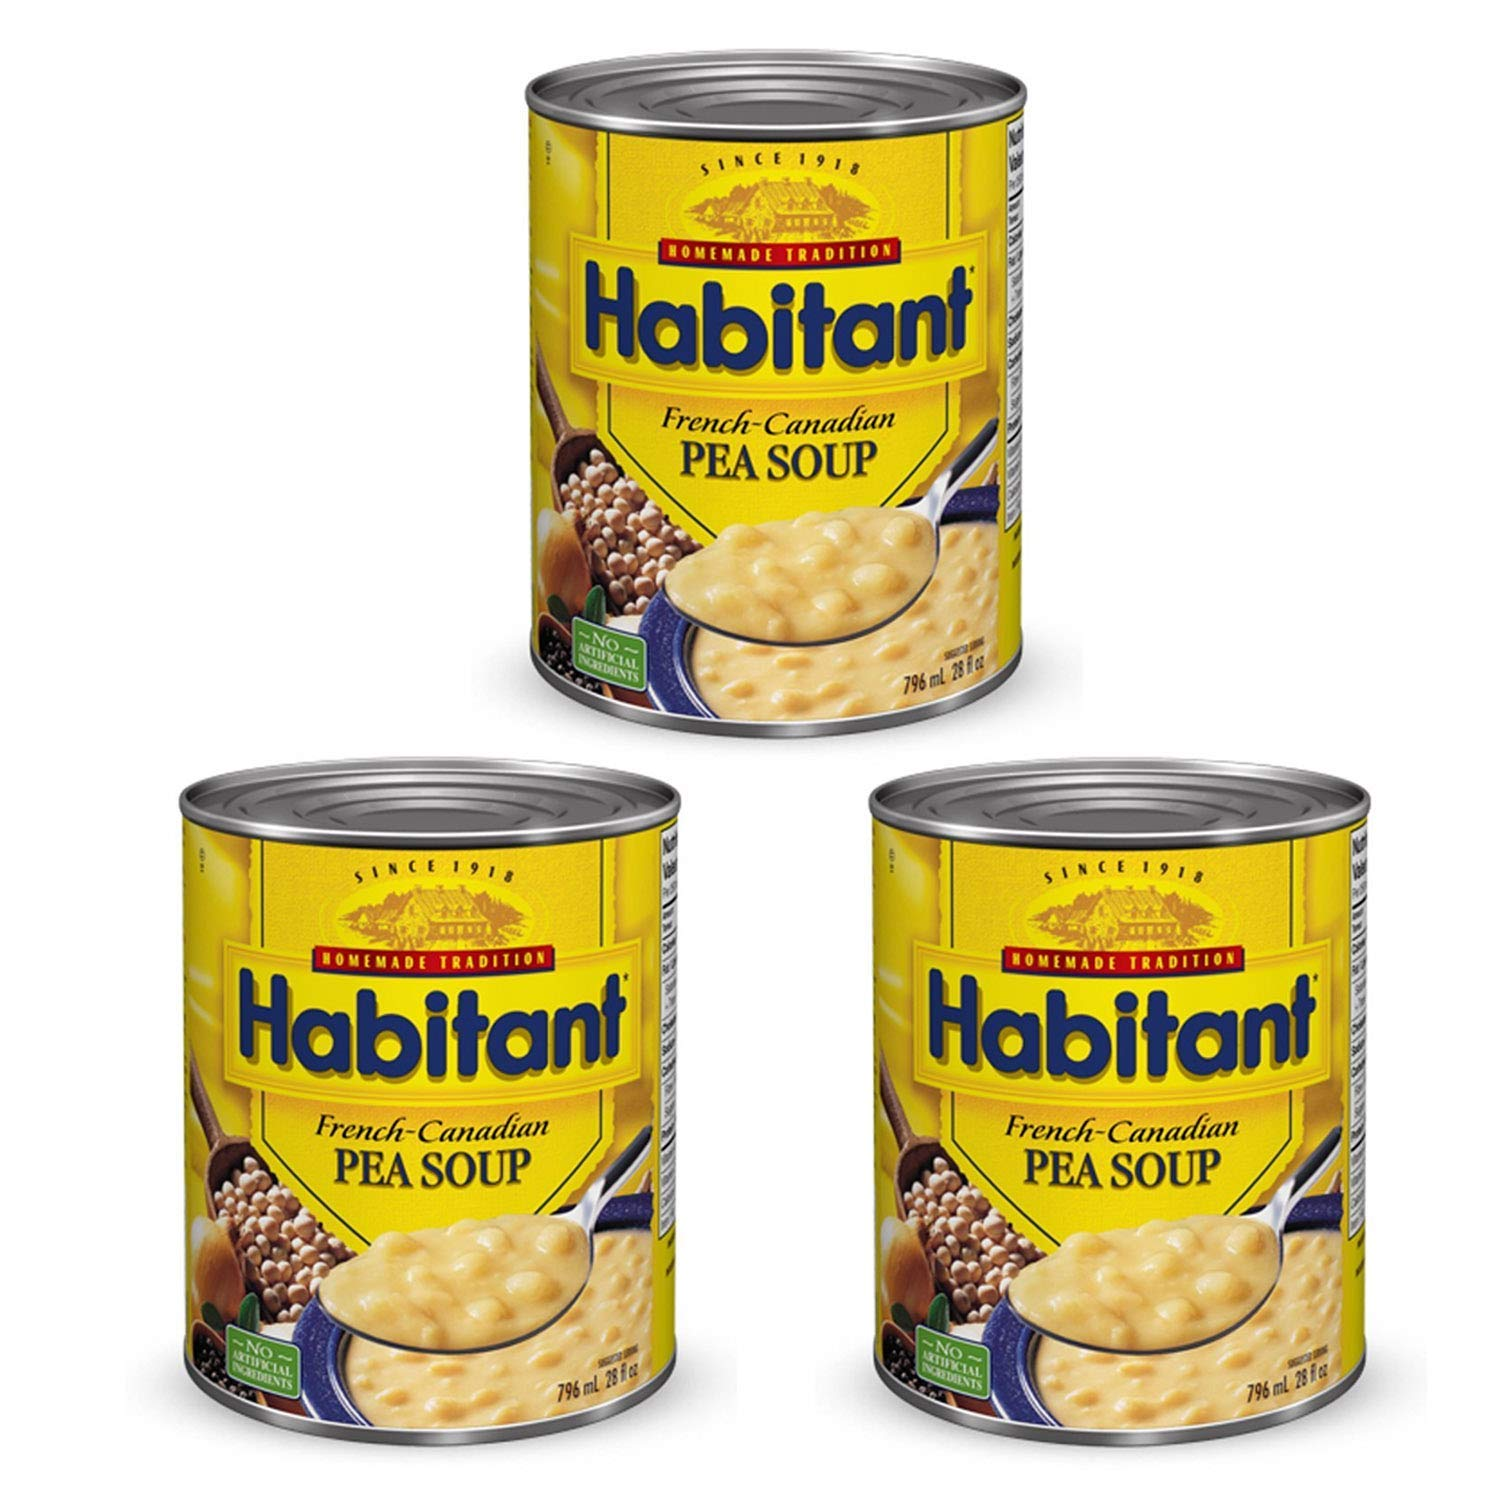 Habitant French Canadian Pea Soup 796ml/28 fl. oz. 3-Pack {Imported from Canada}